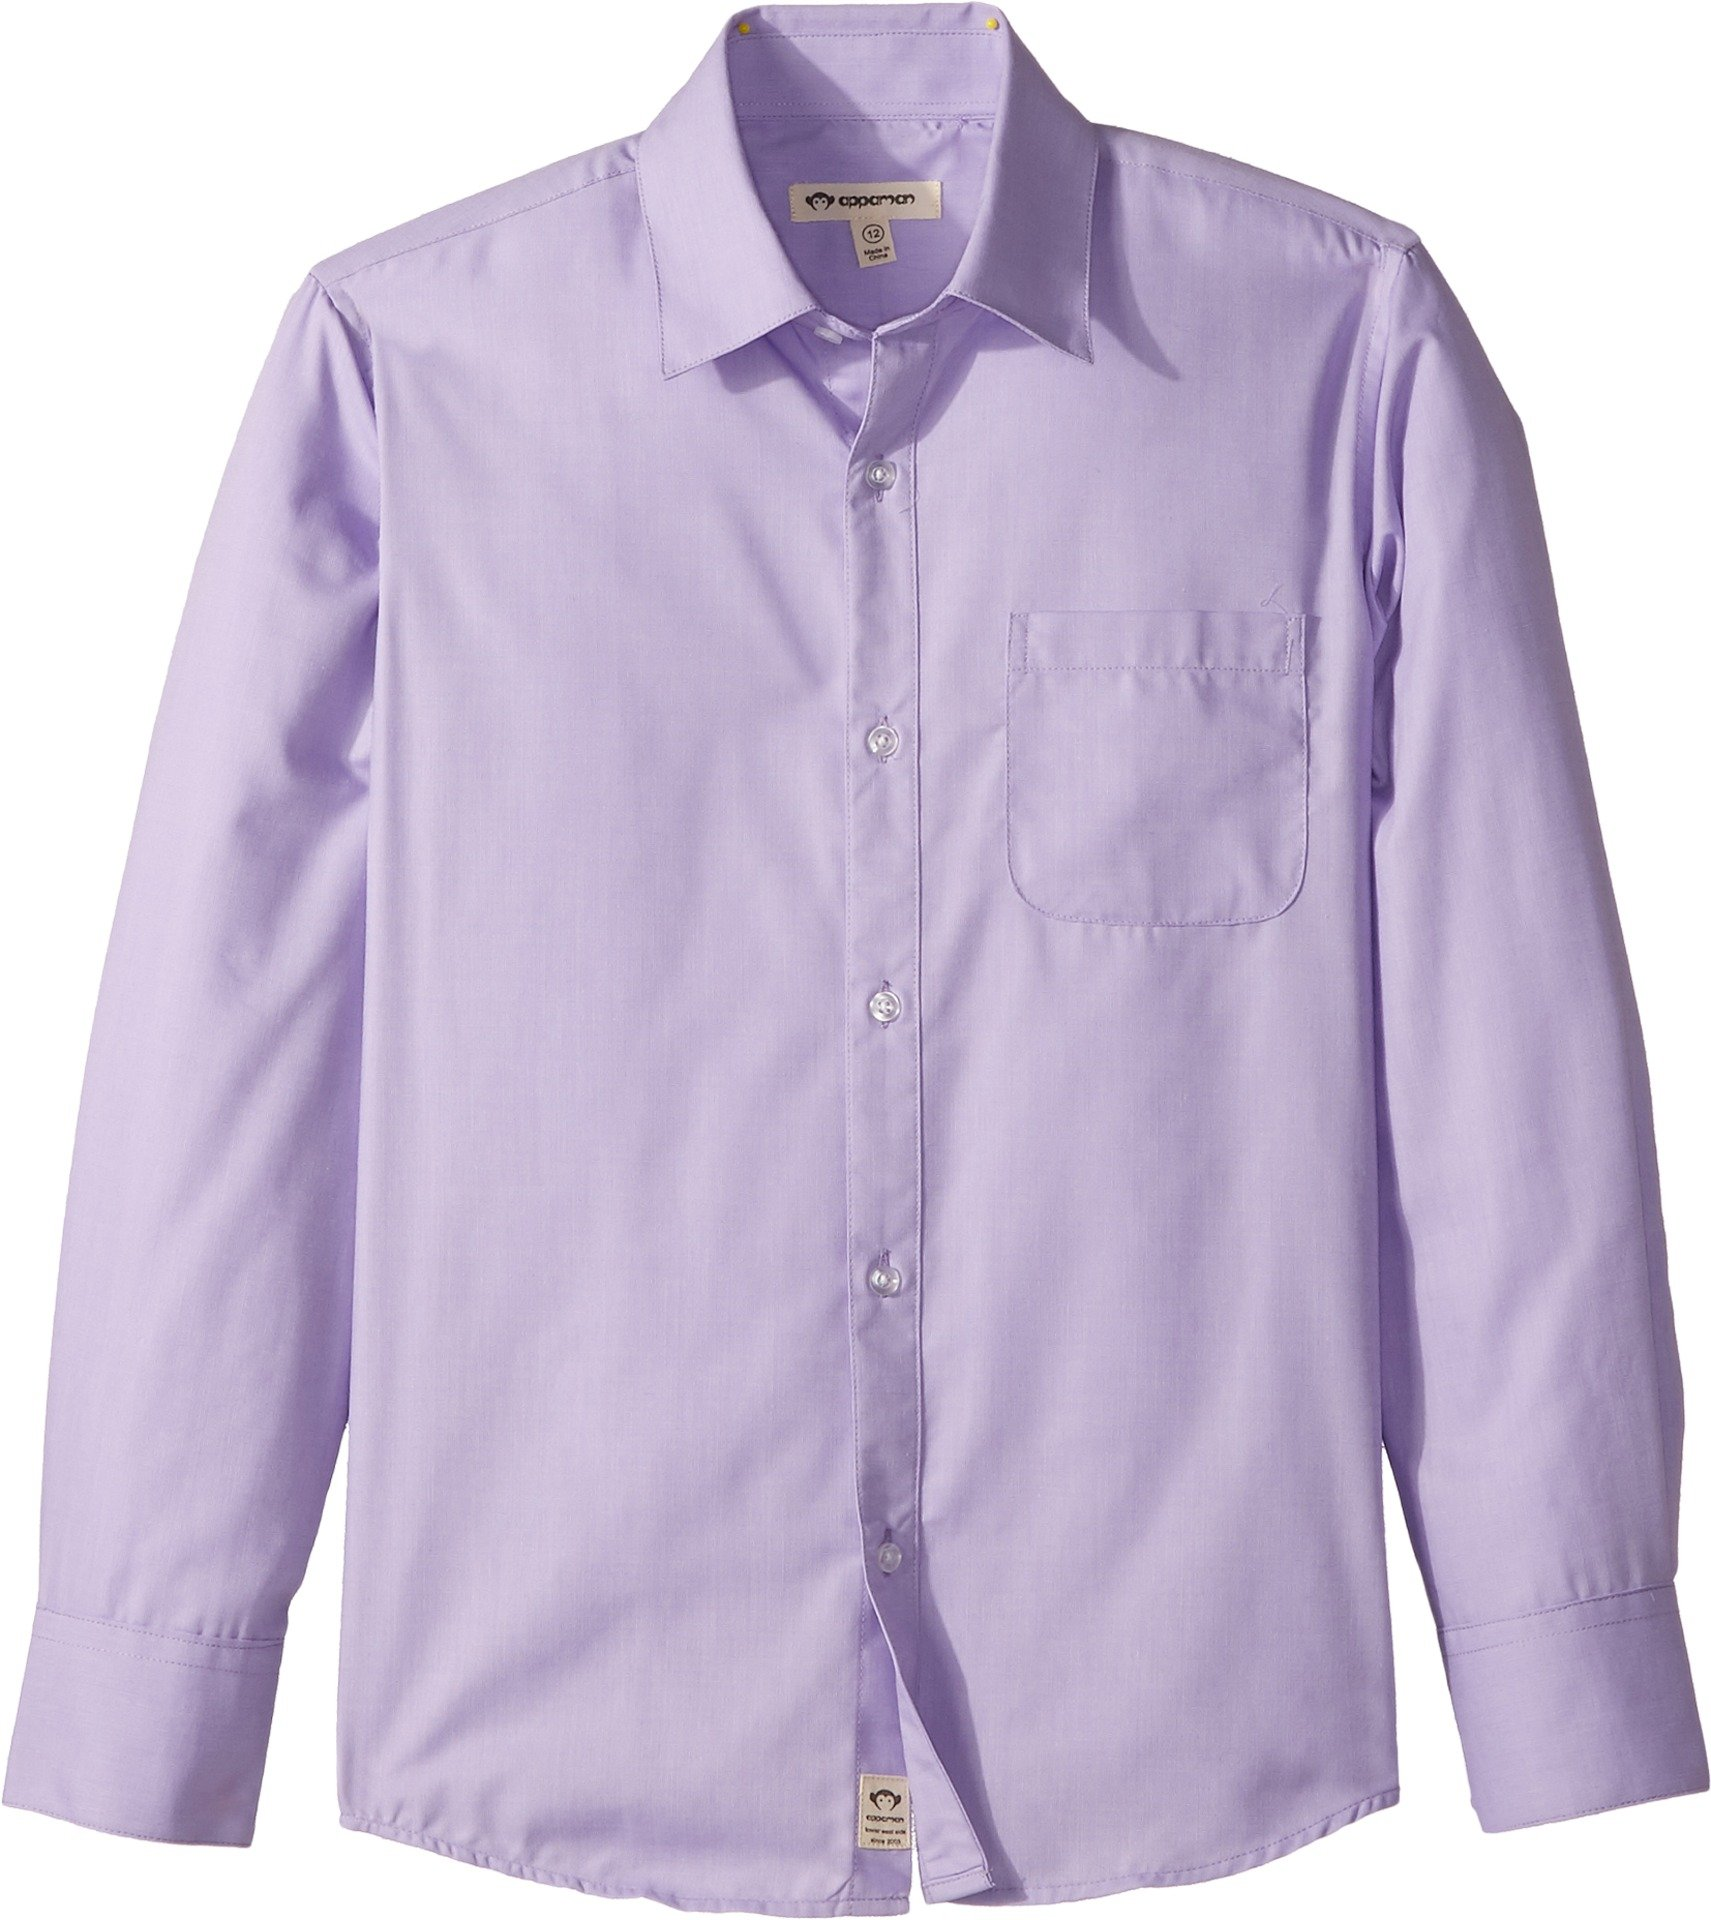 Appaman Boys' Little Standard Shirt, Novelty Lavender 7